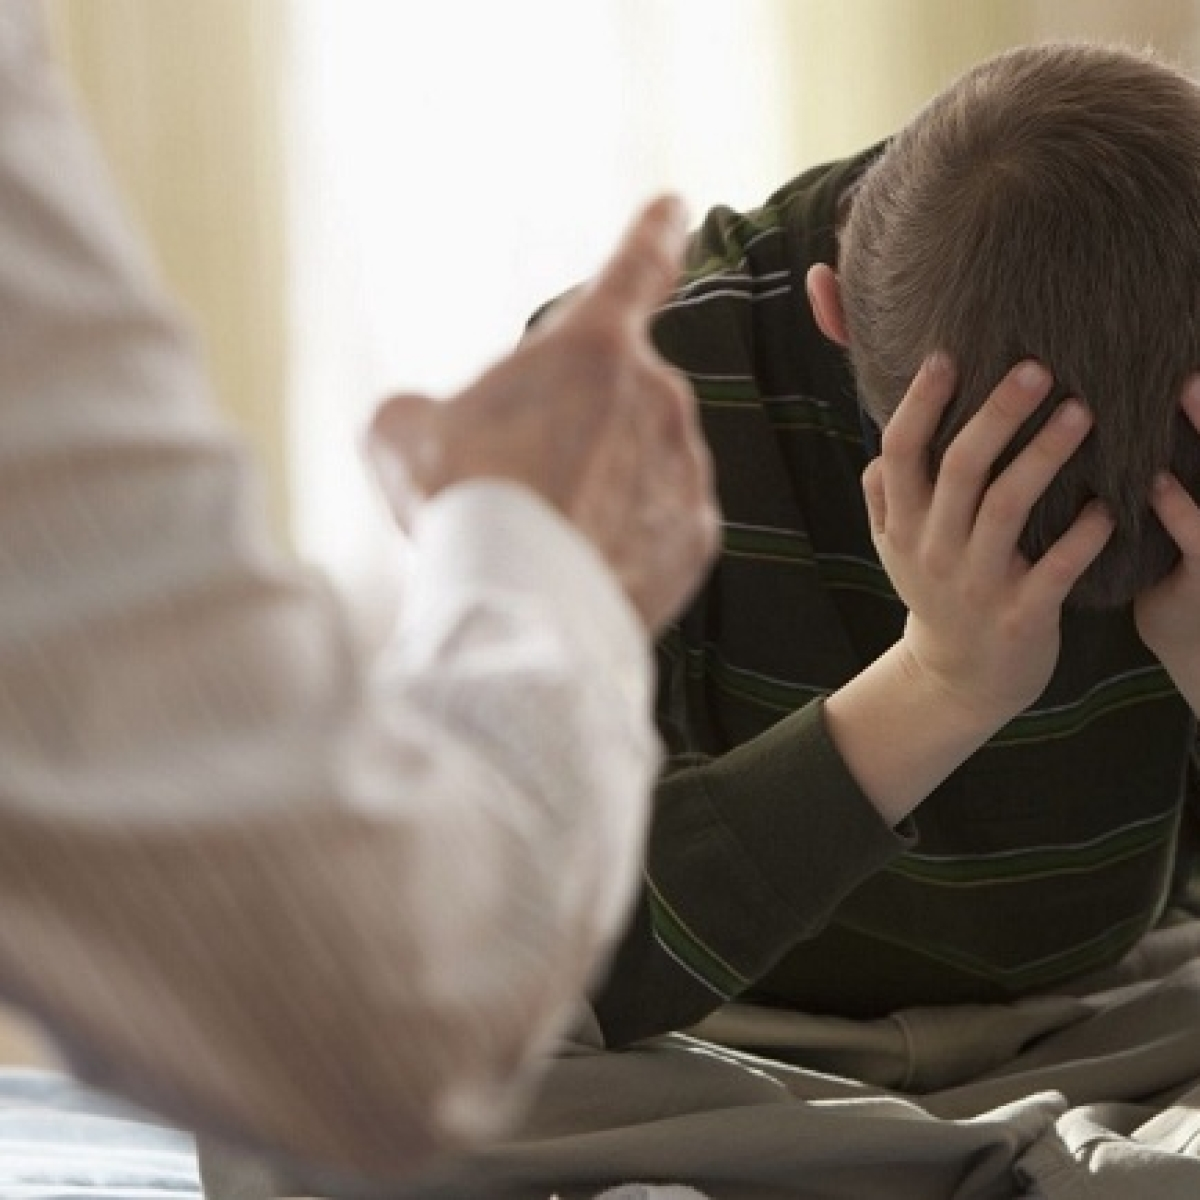 Constant attempts by parents to control their teen kids may stunt their progress